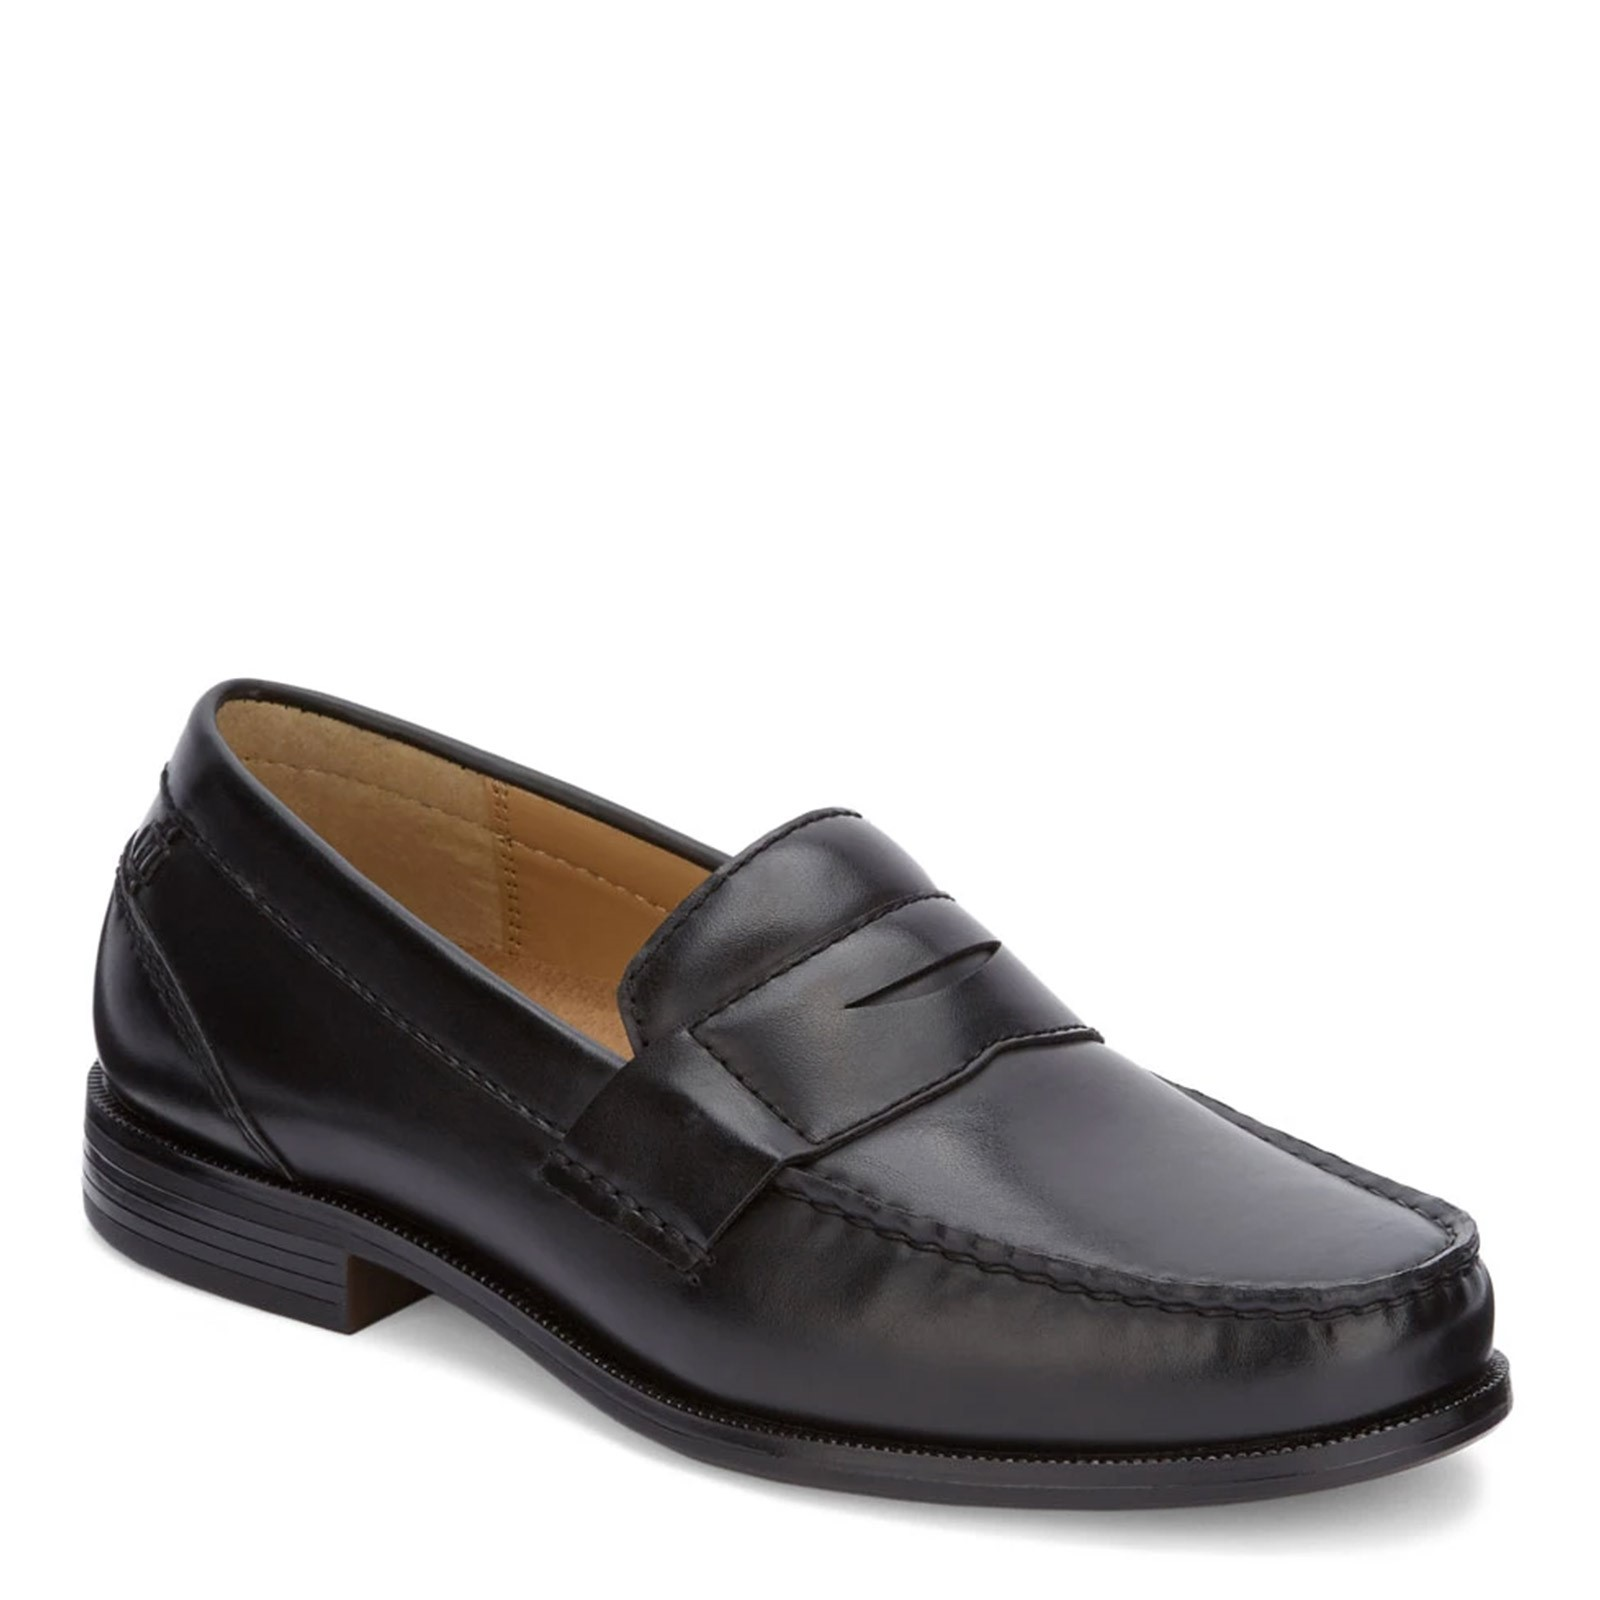 Men's Dockers, Colleague Penny Loafers